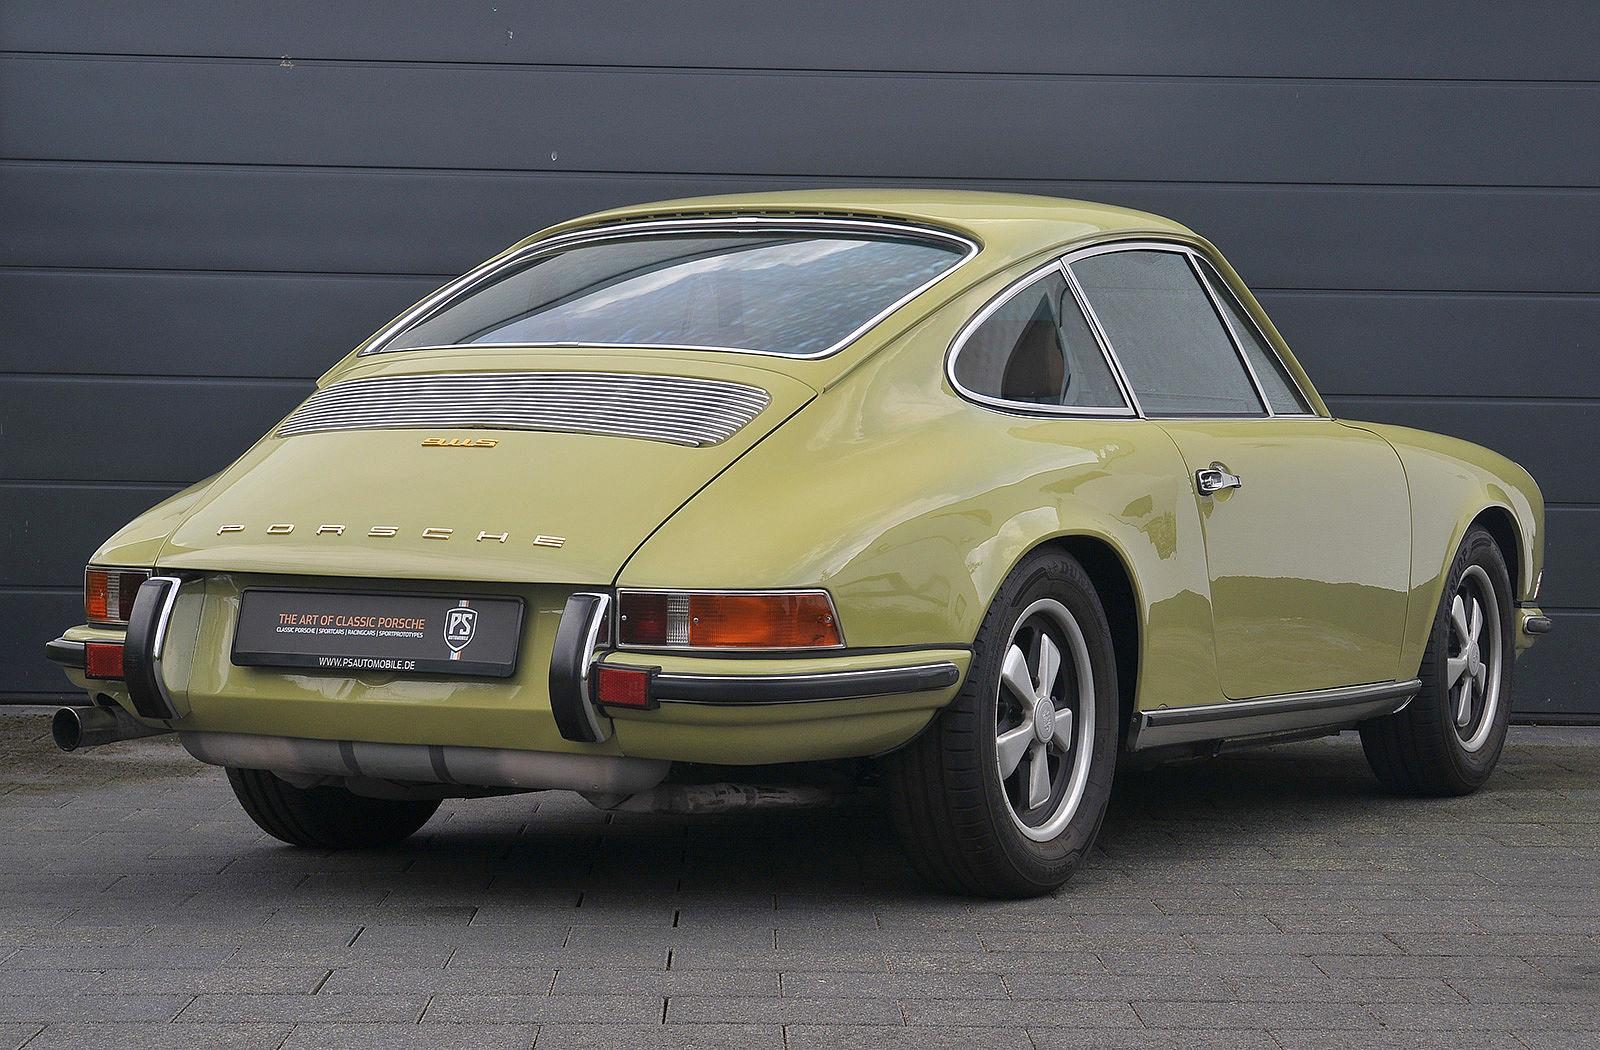 PS Automobile Porsche 911 2.0 S Coupe Gelb 03